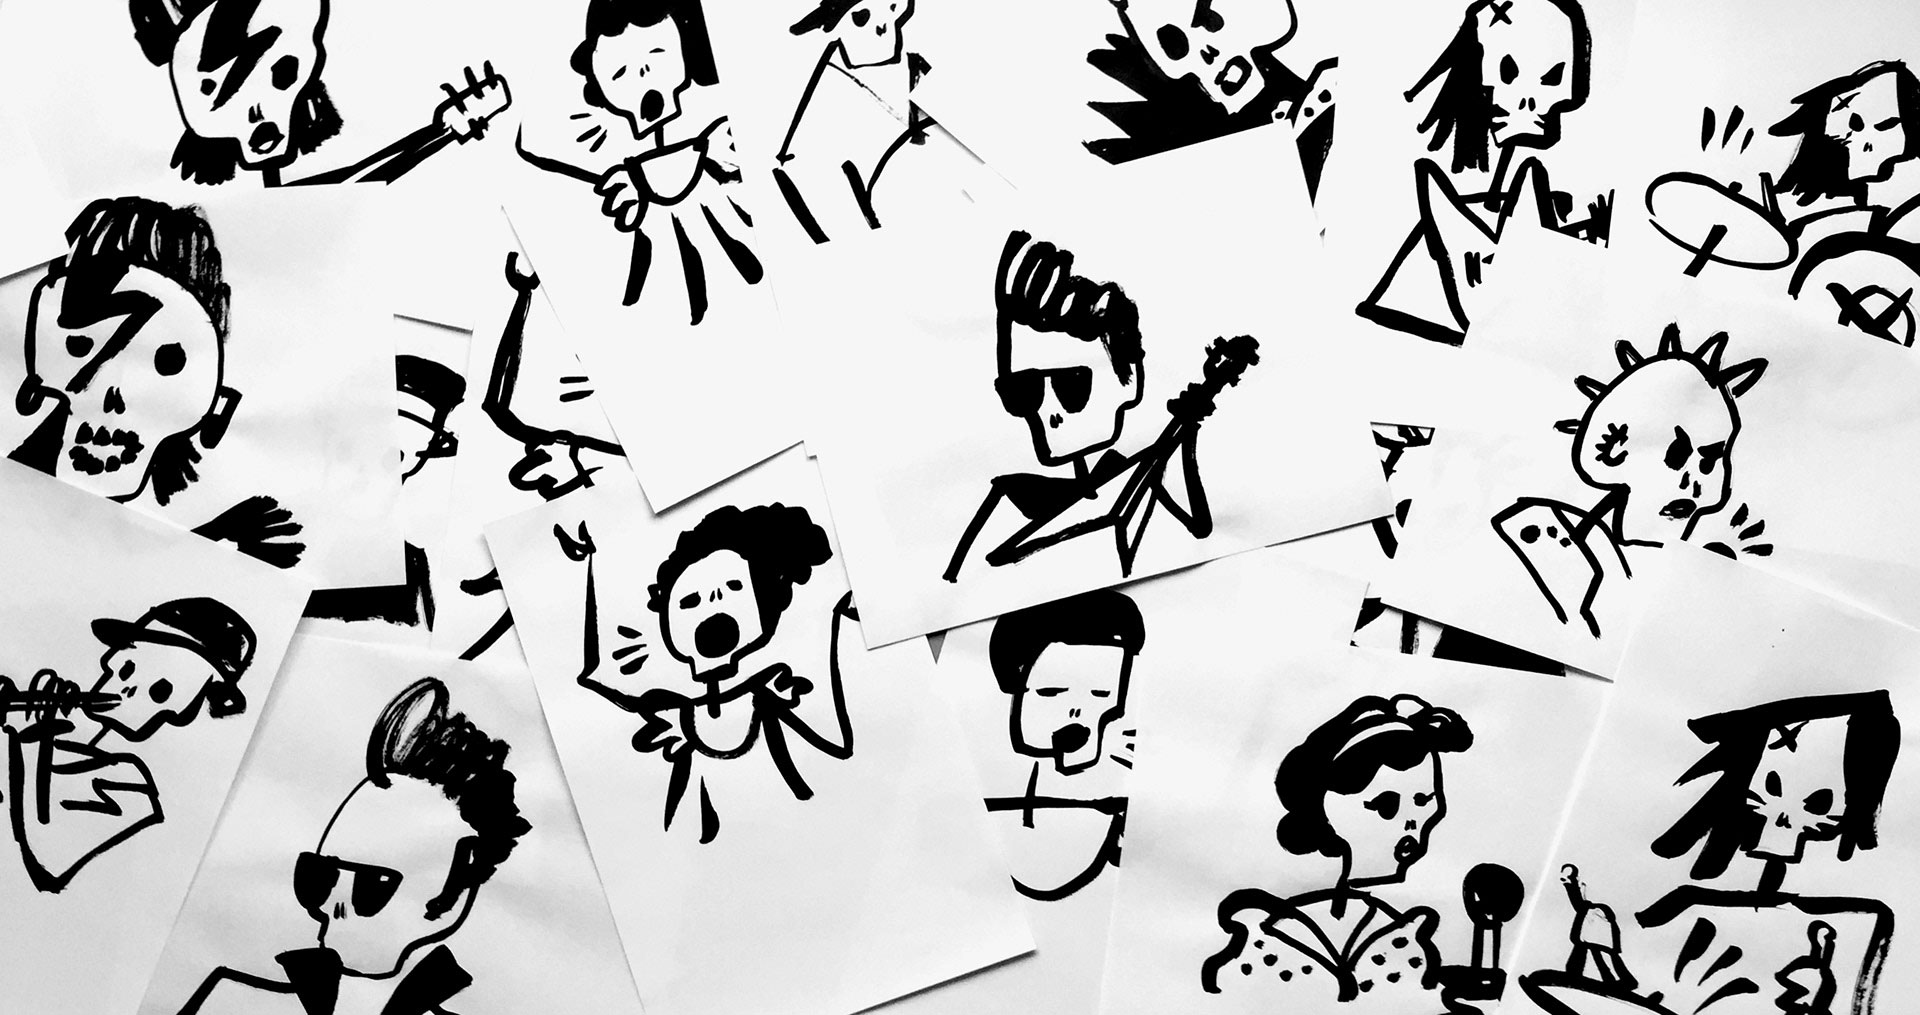 Punk-Cabaret_drawing_7